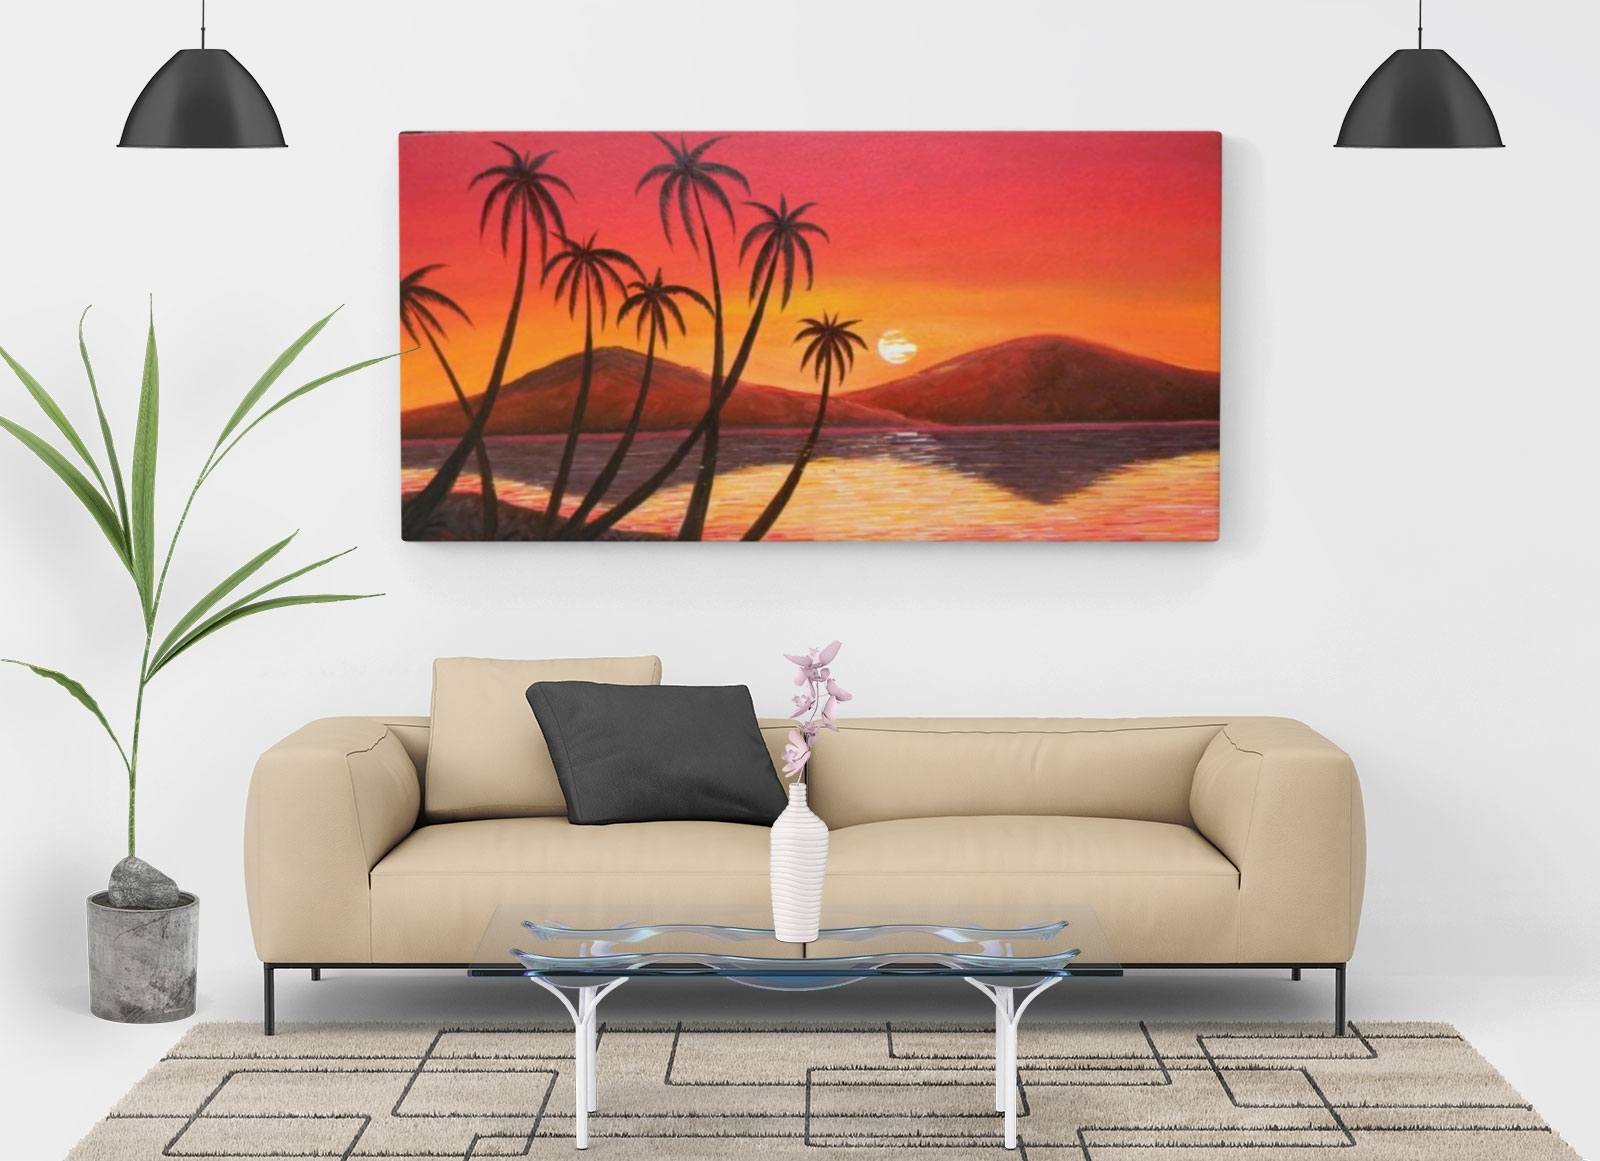 Most Recent Free Living Room Painting Wall Canvas Mockup Psd – Good Mockups Inside Mockup Canvas Wall Art (View 13 of 15)